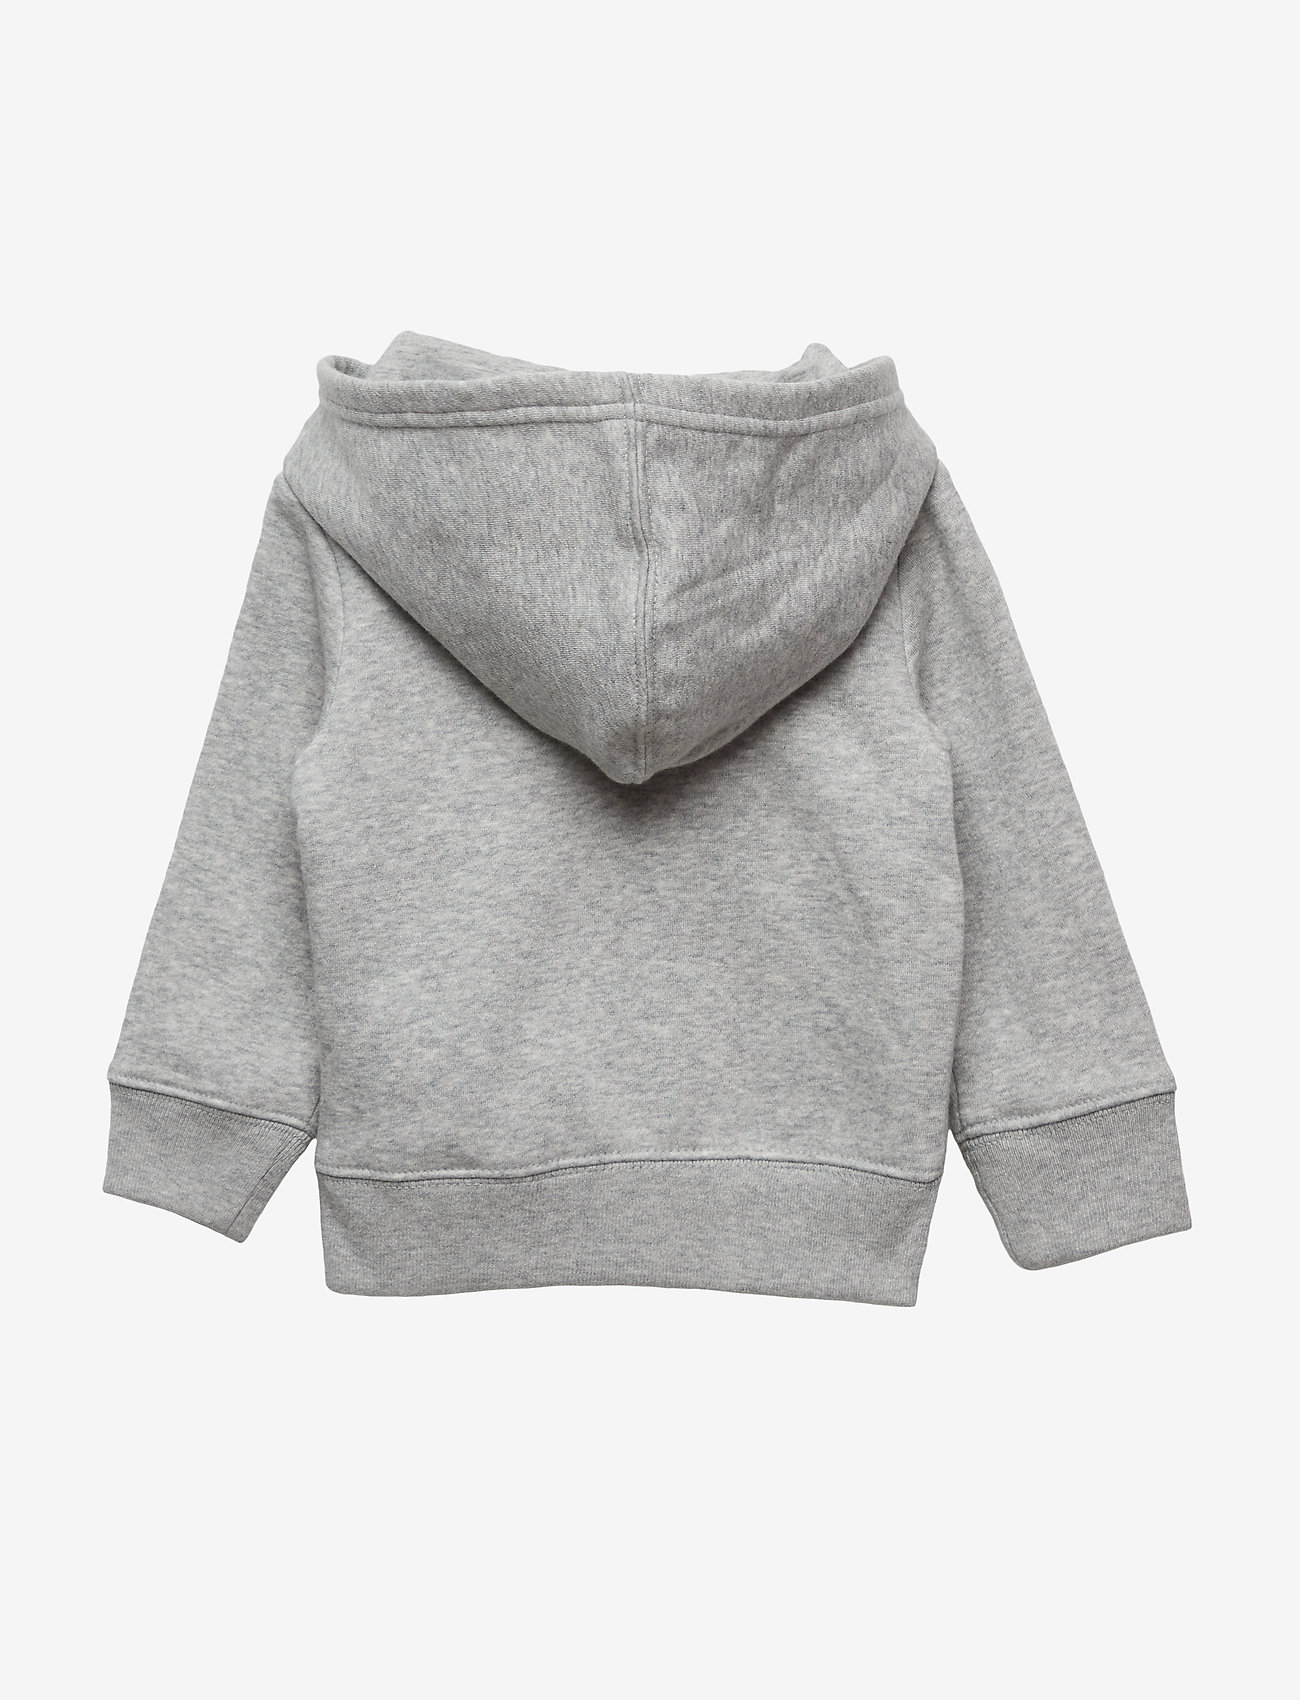 Toddler Gap Logo Hoodie Sweatshirt (Heather Grey) (17.55 €) - GAP SNbrK